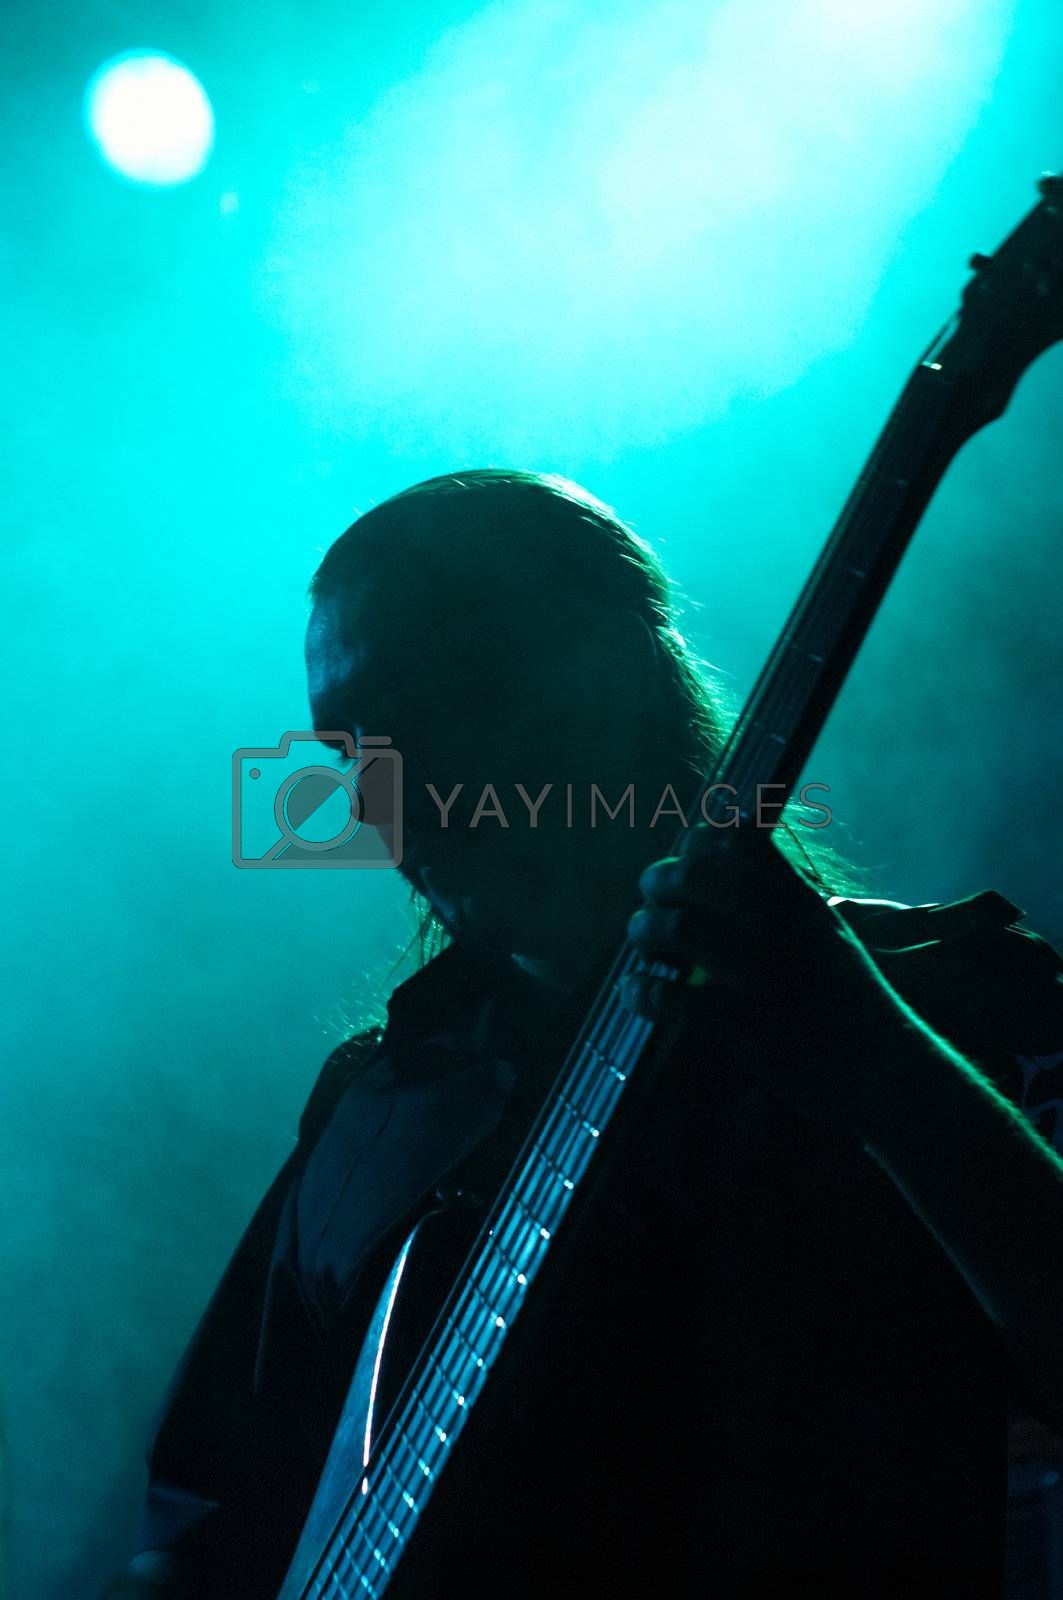 Royalty free image of Bass-guitarist on live convert, at bluelight with smoke by DeusNoxious